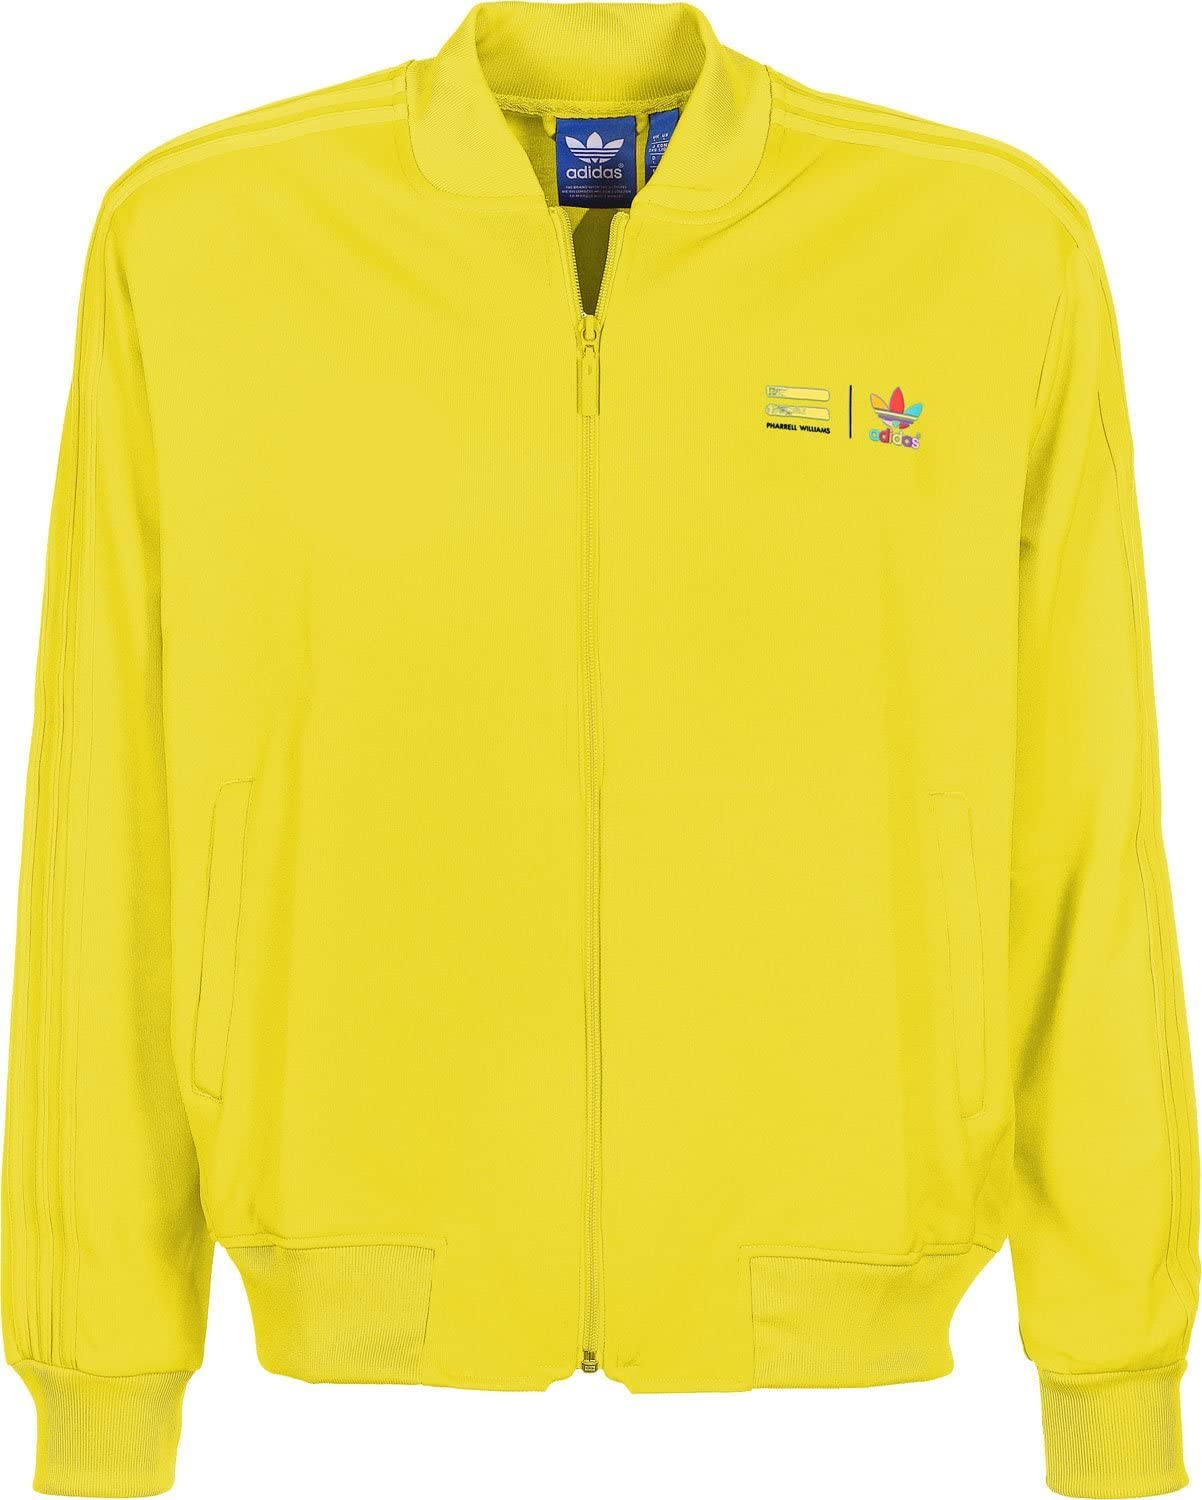 Color Sst Originals Veste Mono Ac5928Amazon Jaune Adidas rxBoWedC